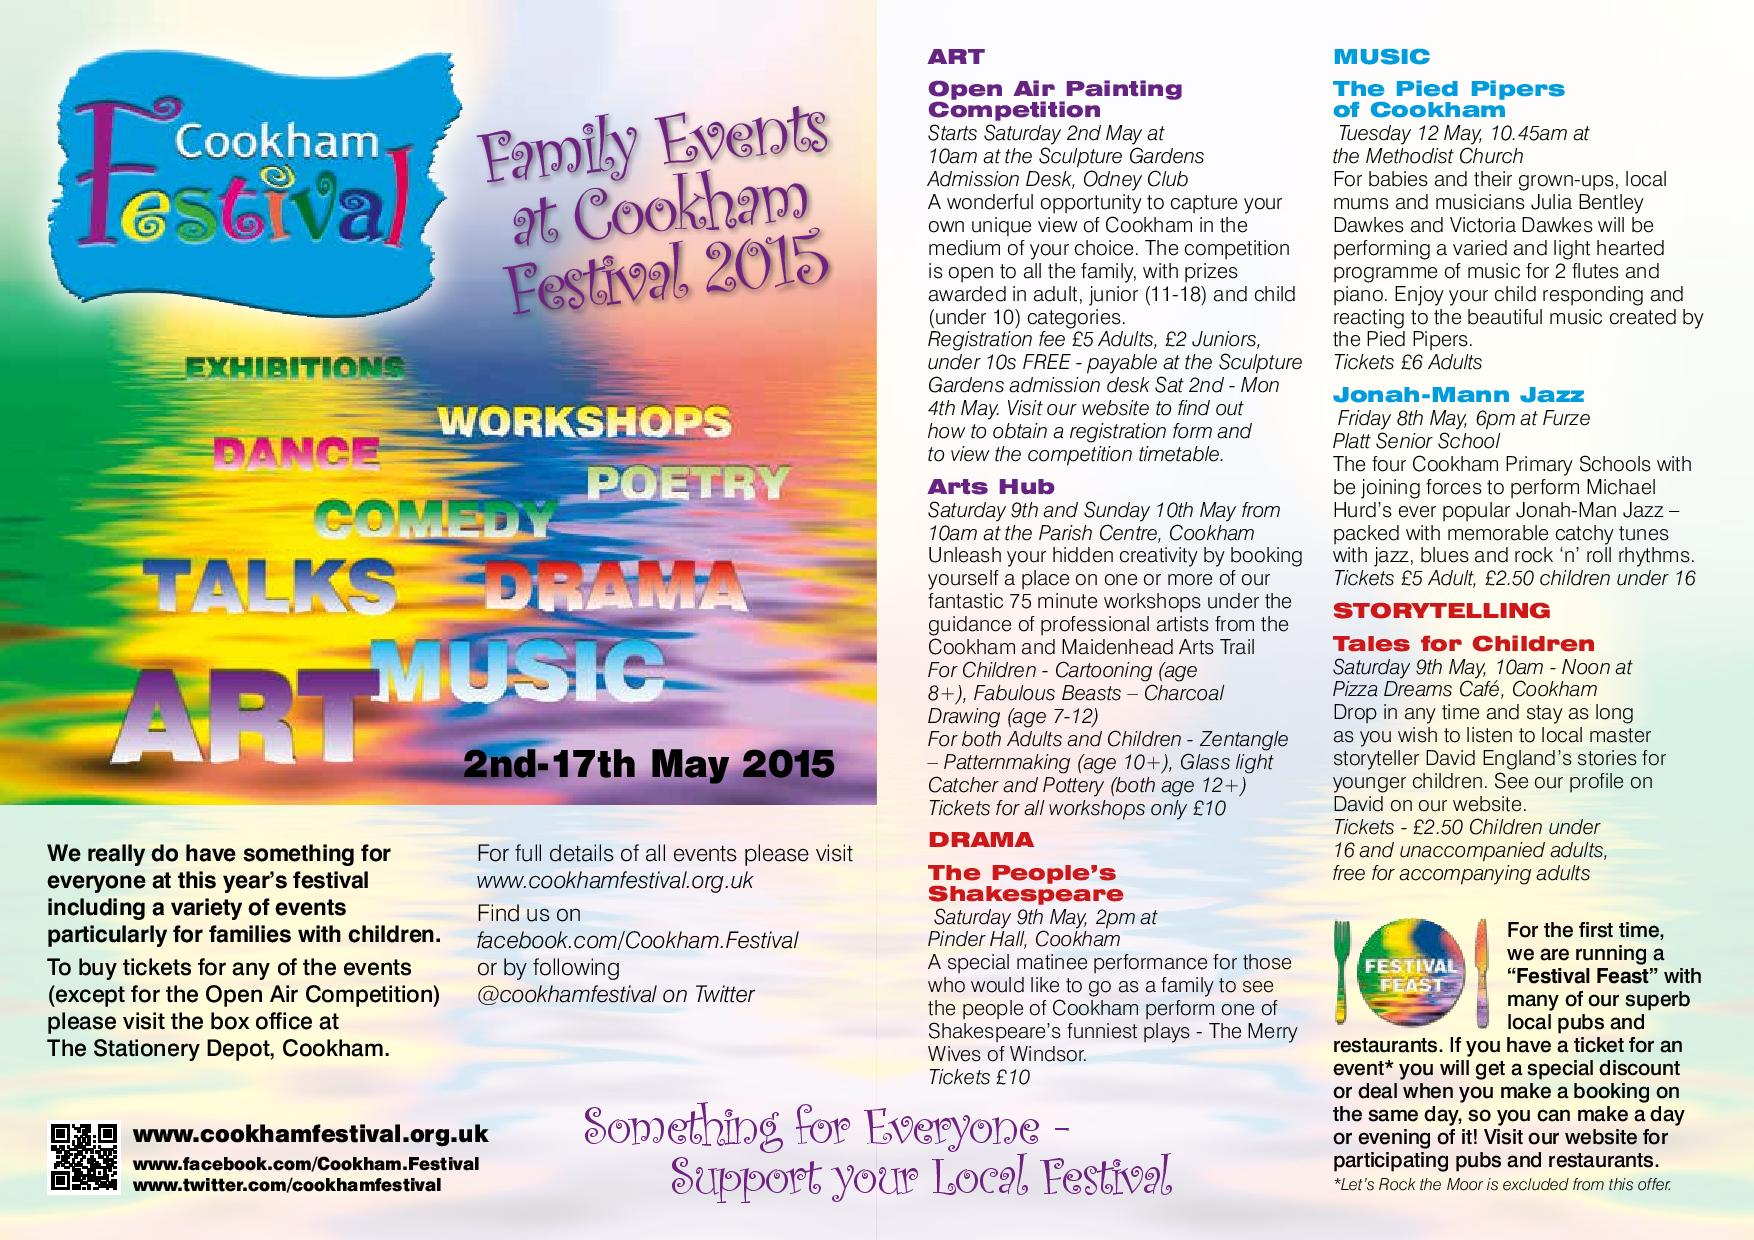 Cookham Festival Family Events